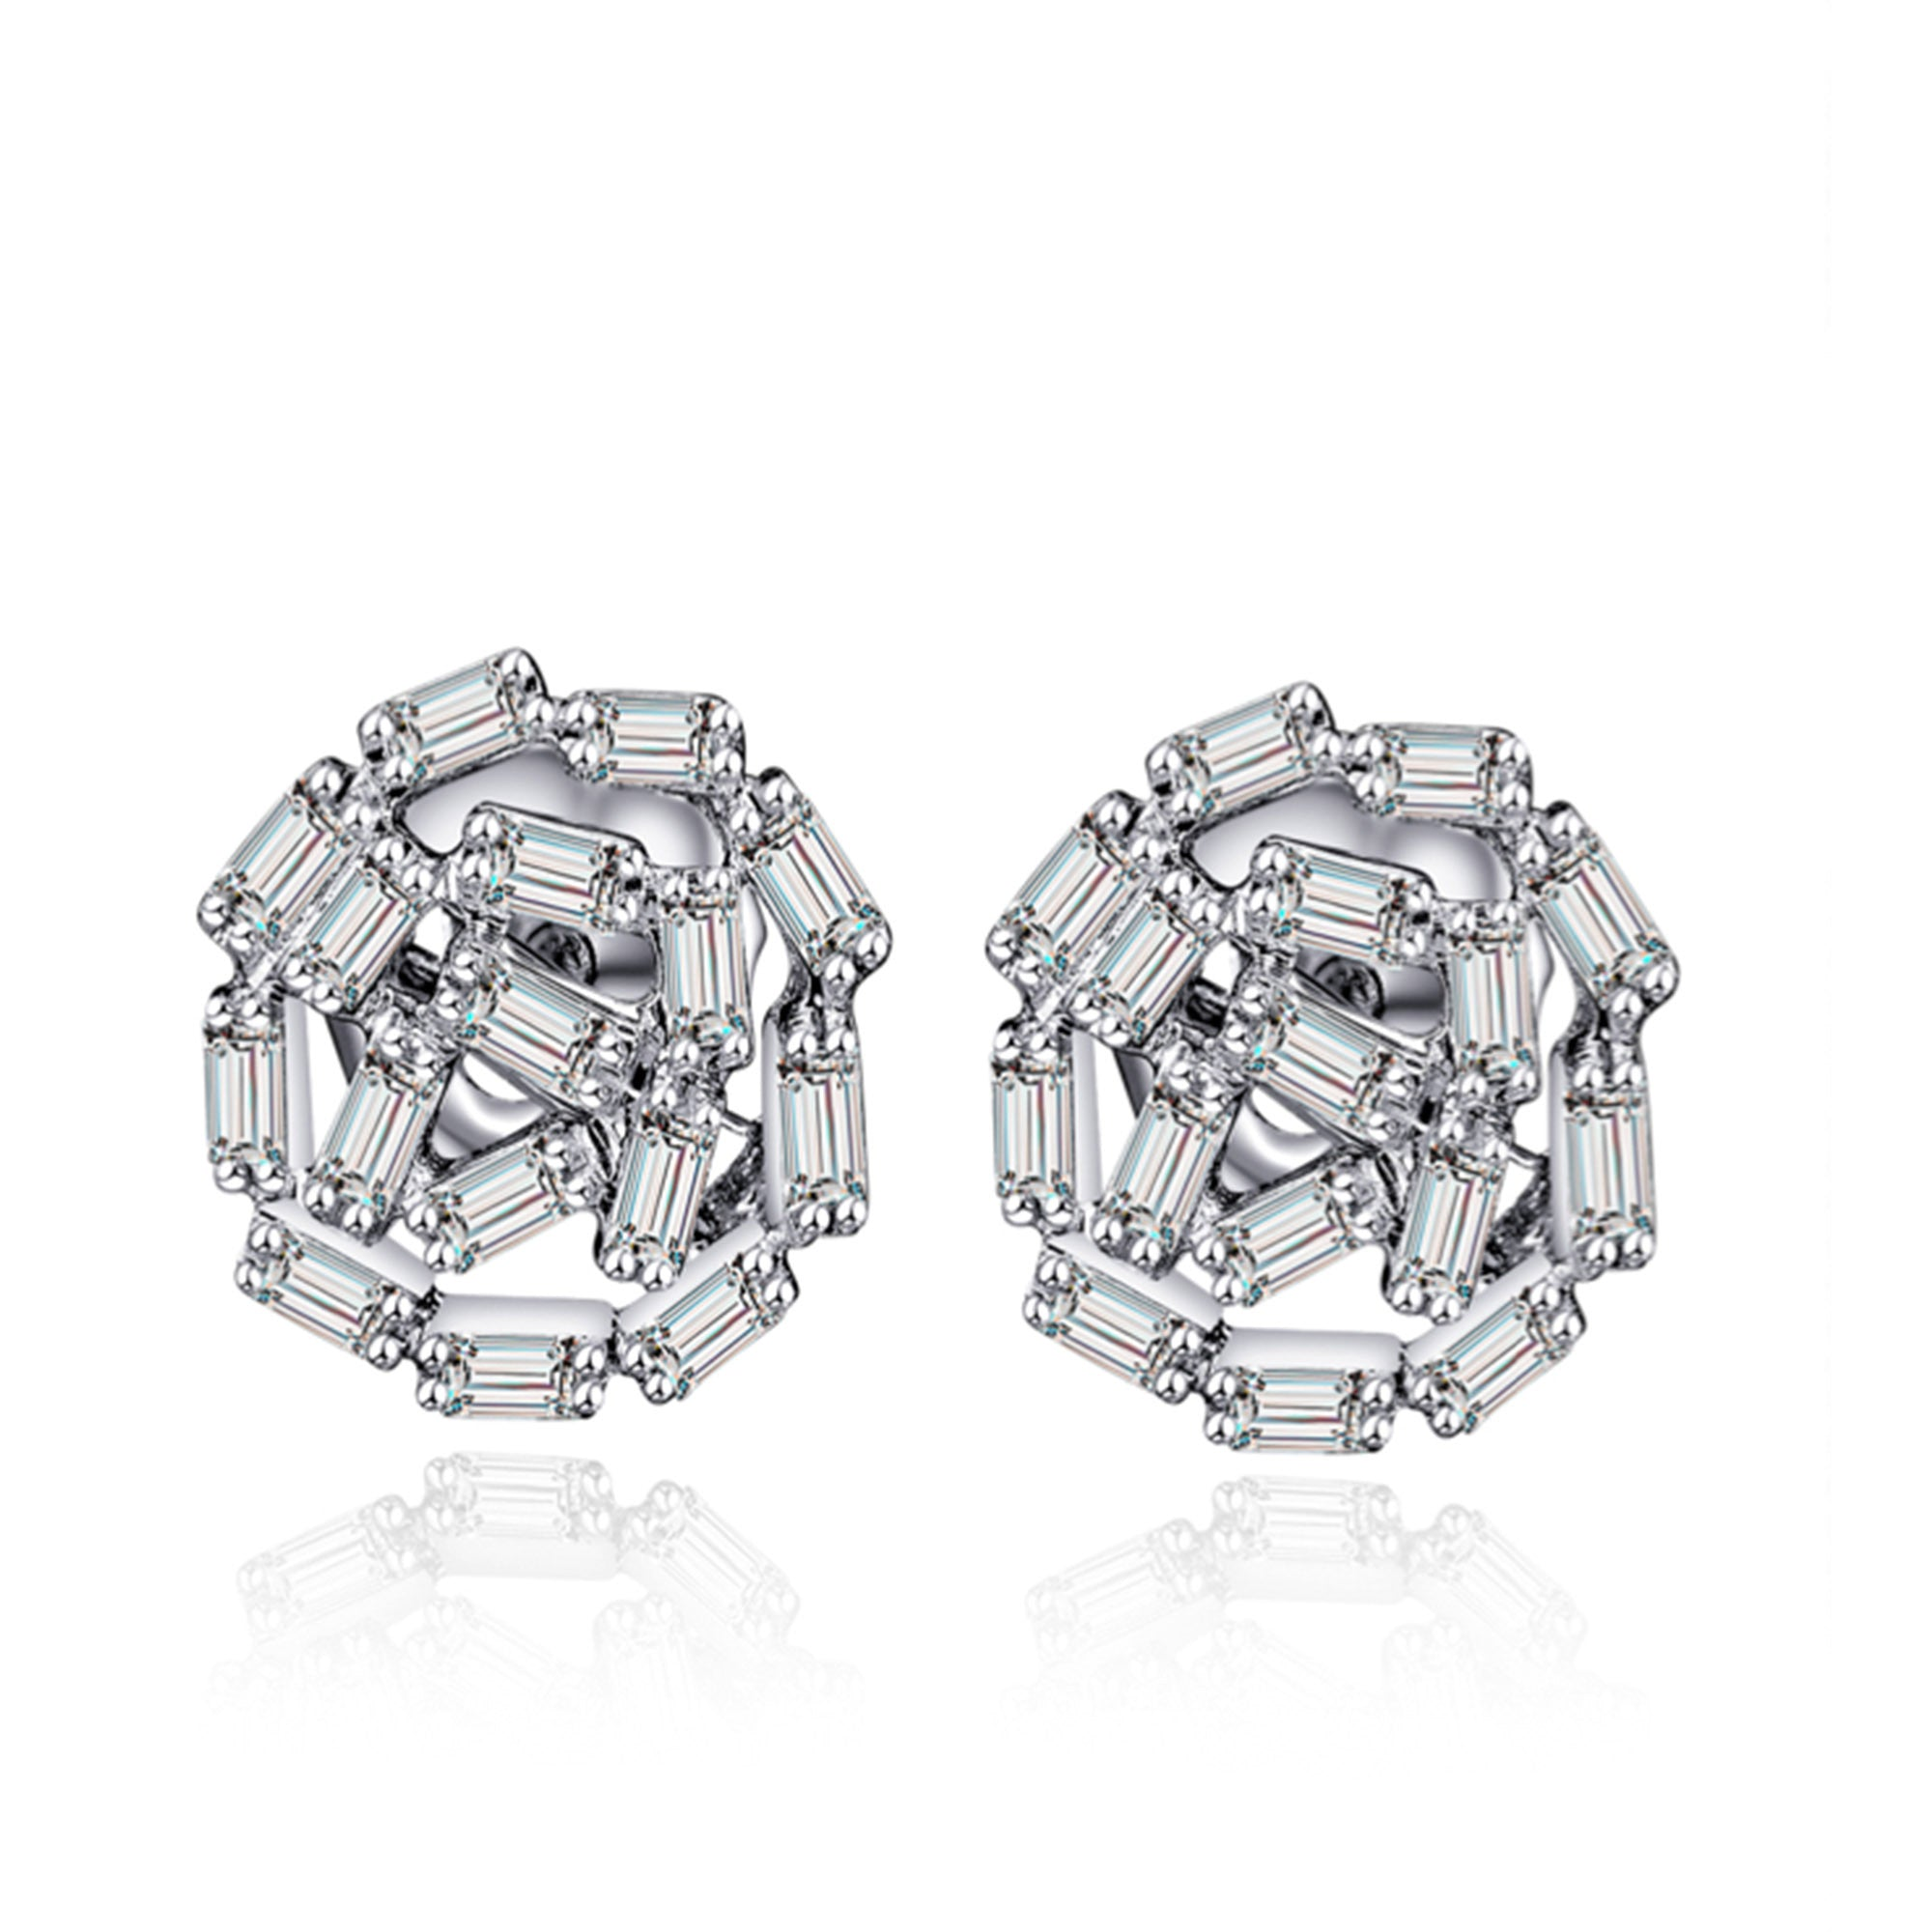 jewellery diamond stud ak danabronfman earrings cut pyramidal black earring studs rose natural medium grey products